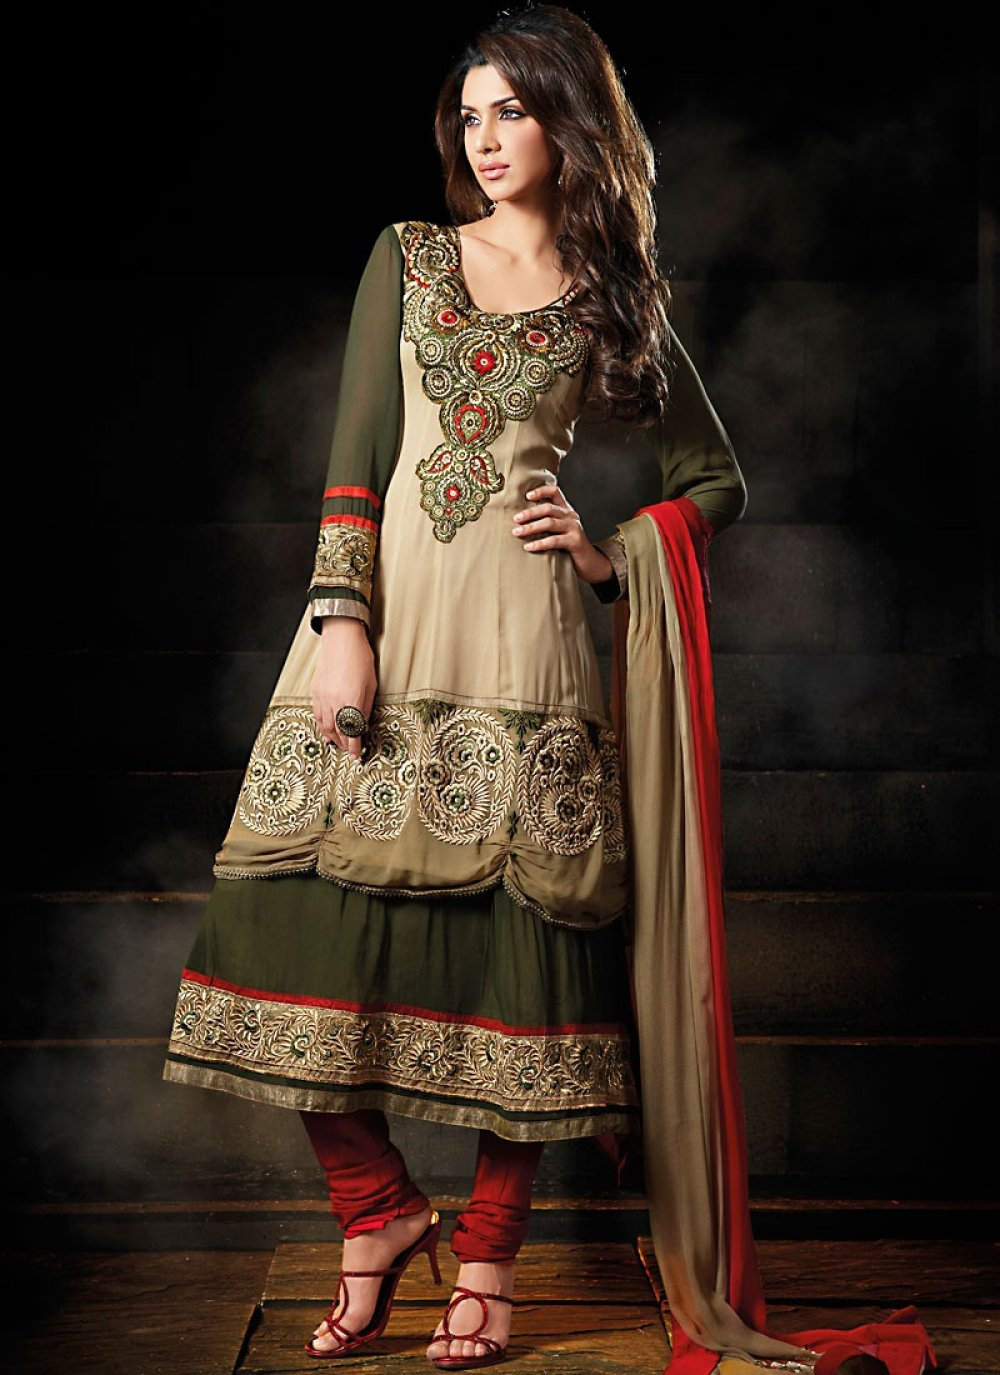 Deep Olive Green & Brown Salwar Kameez